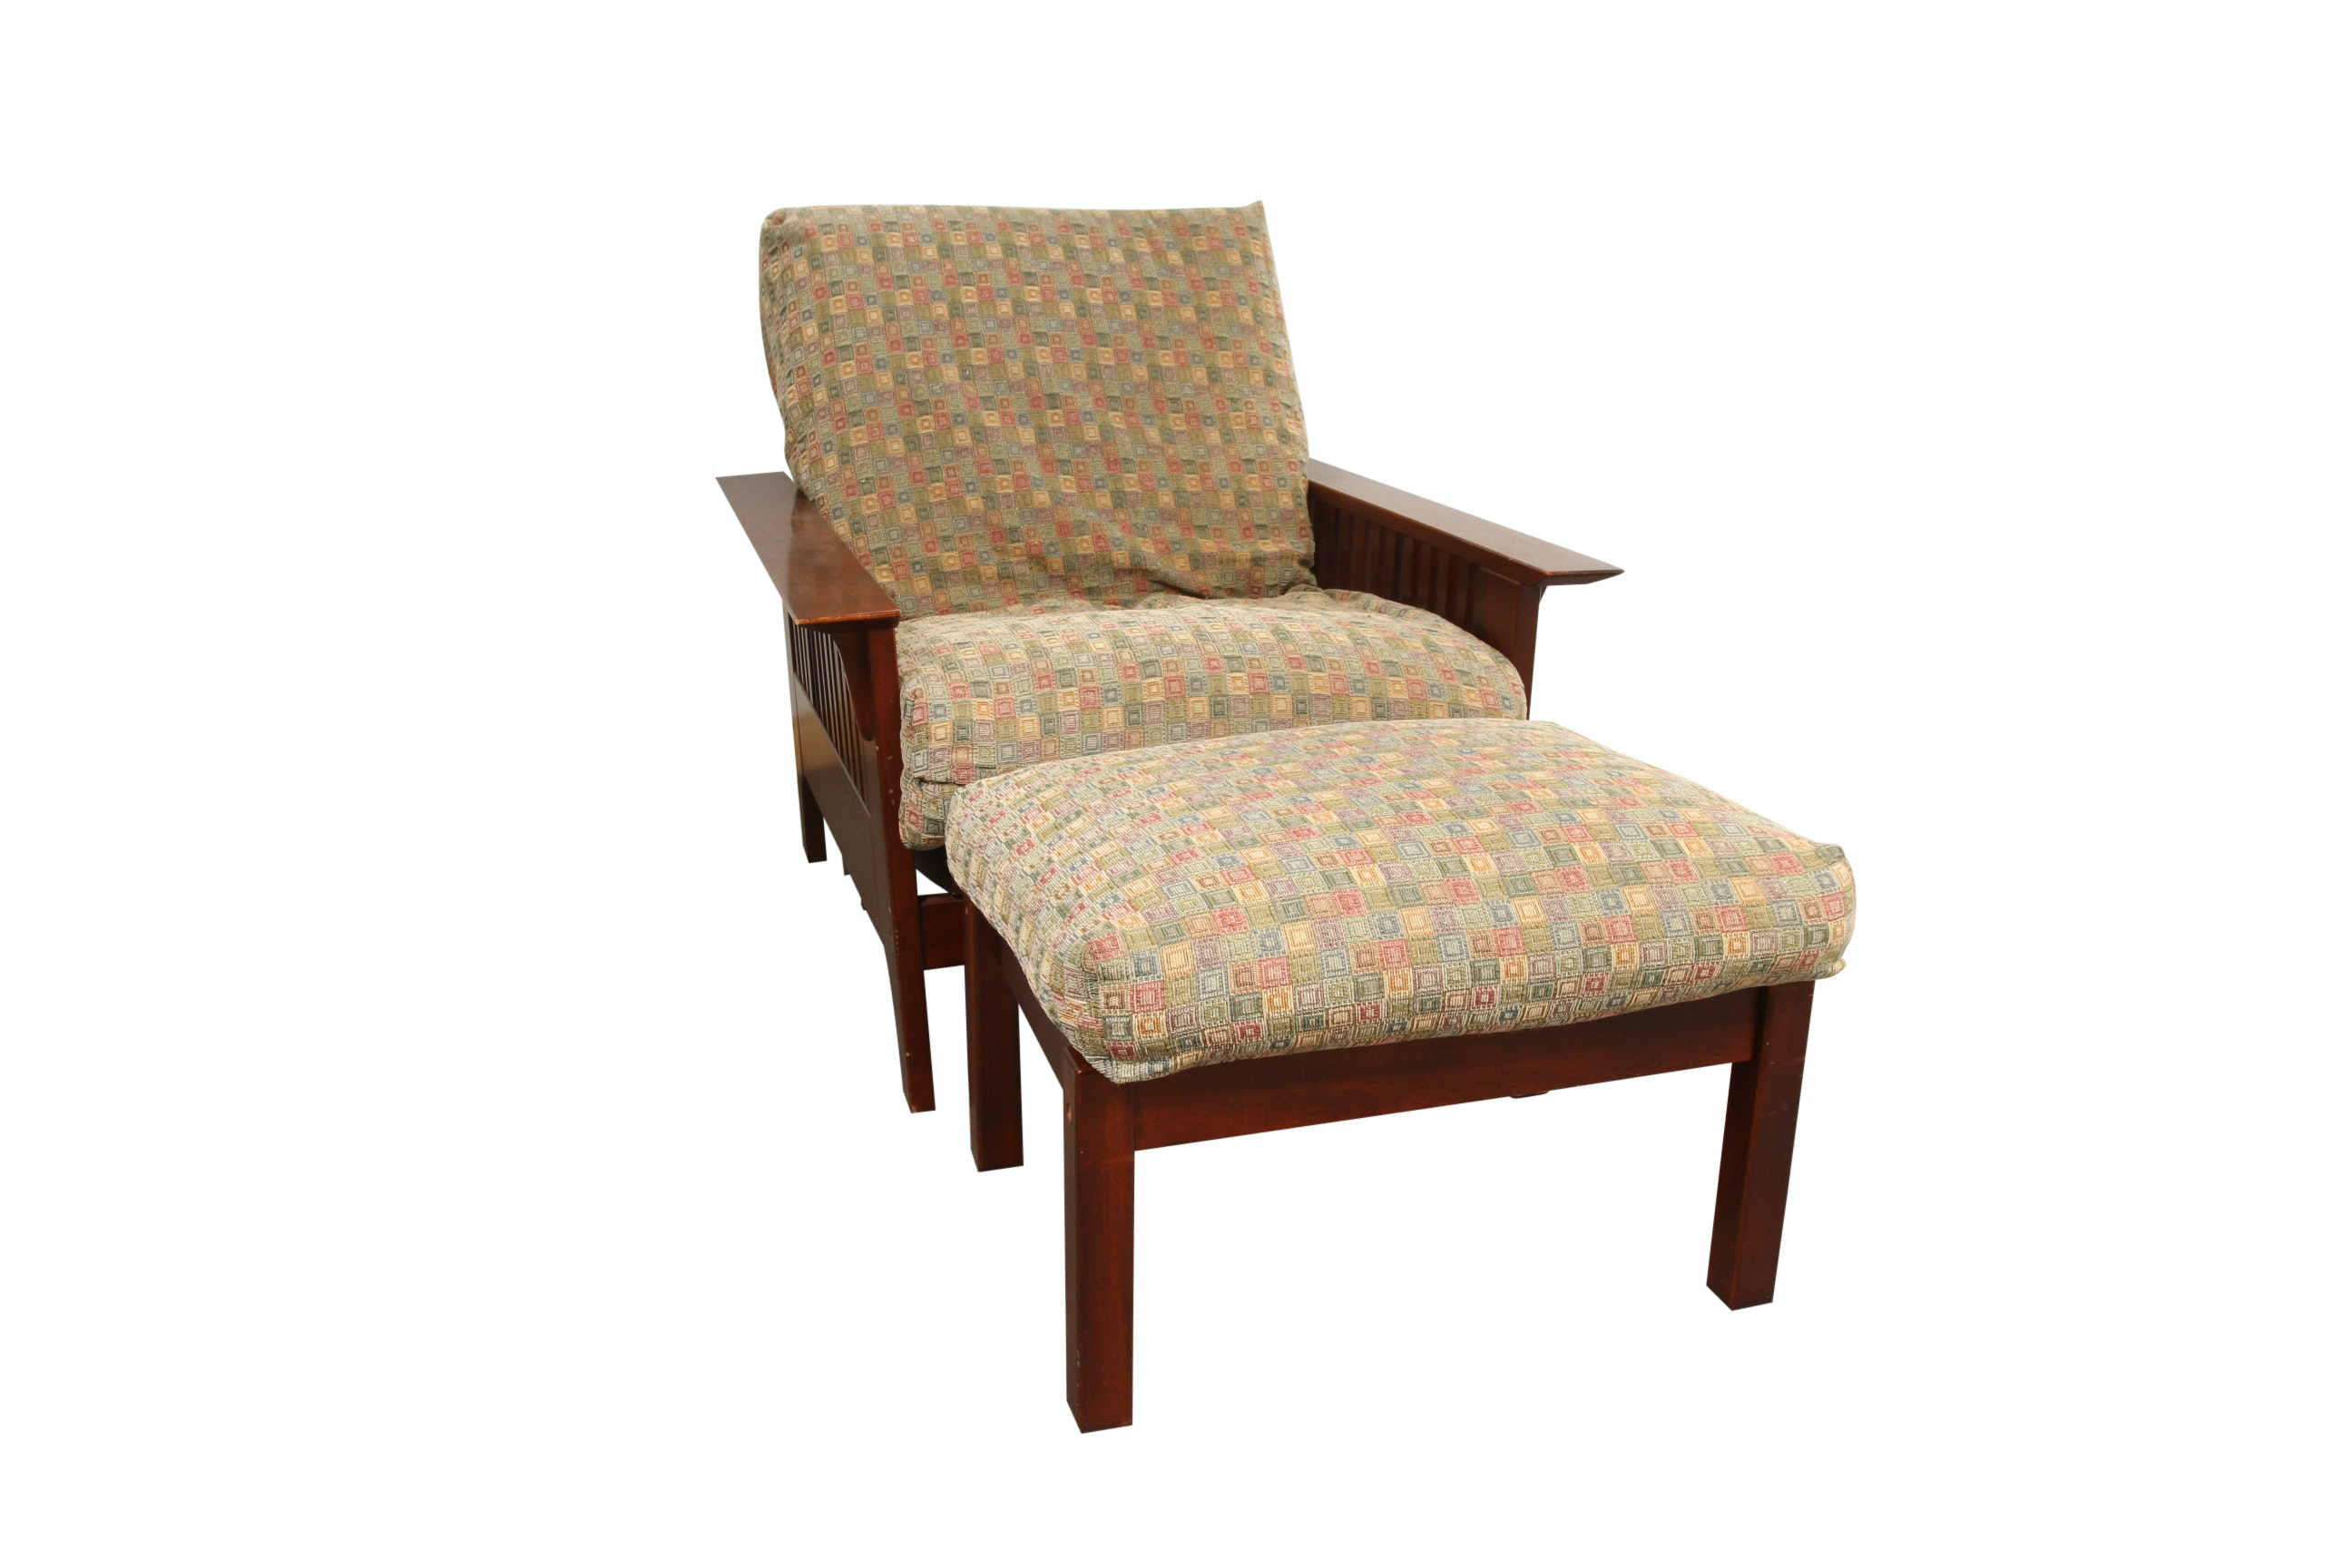 Mission Style Lounge Chair/Futon and Ottoman ...  sc 1 st  EBTH.com & Mission Style Lounge Chair/Futon and Ottoman : EBTH